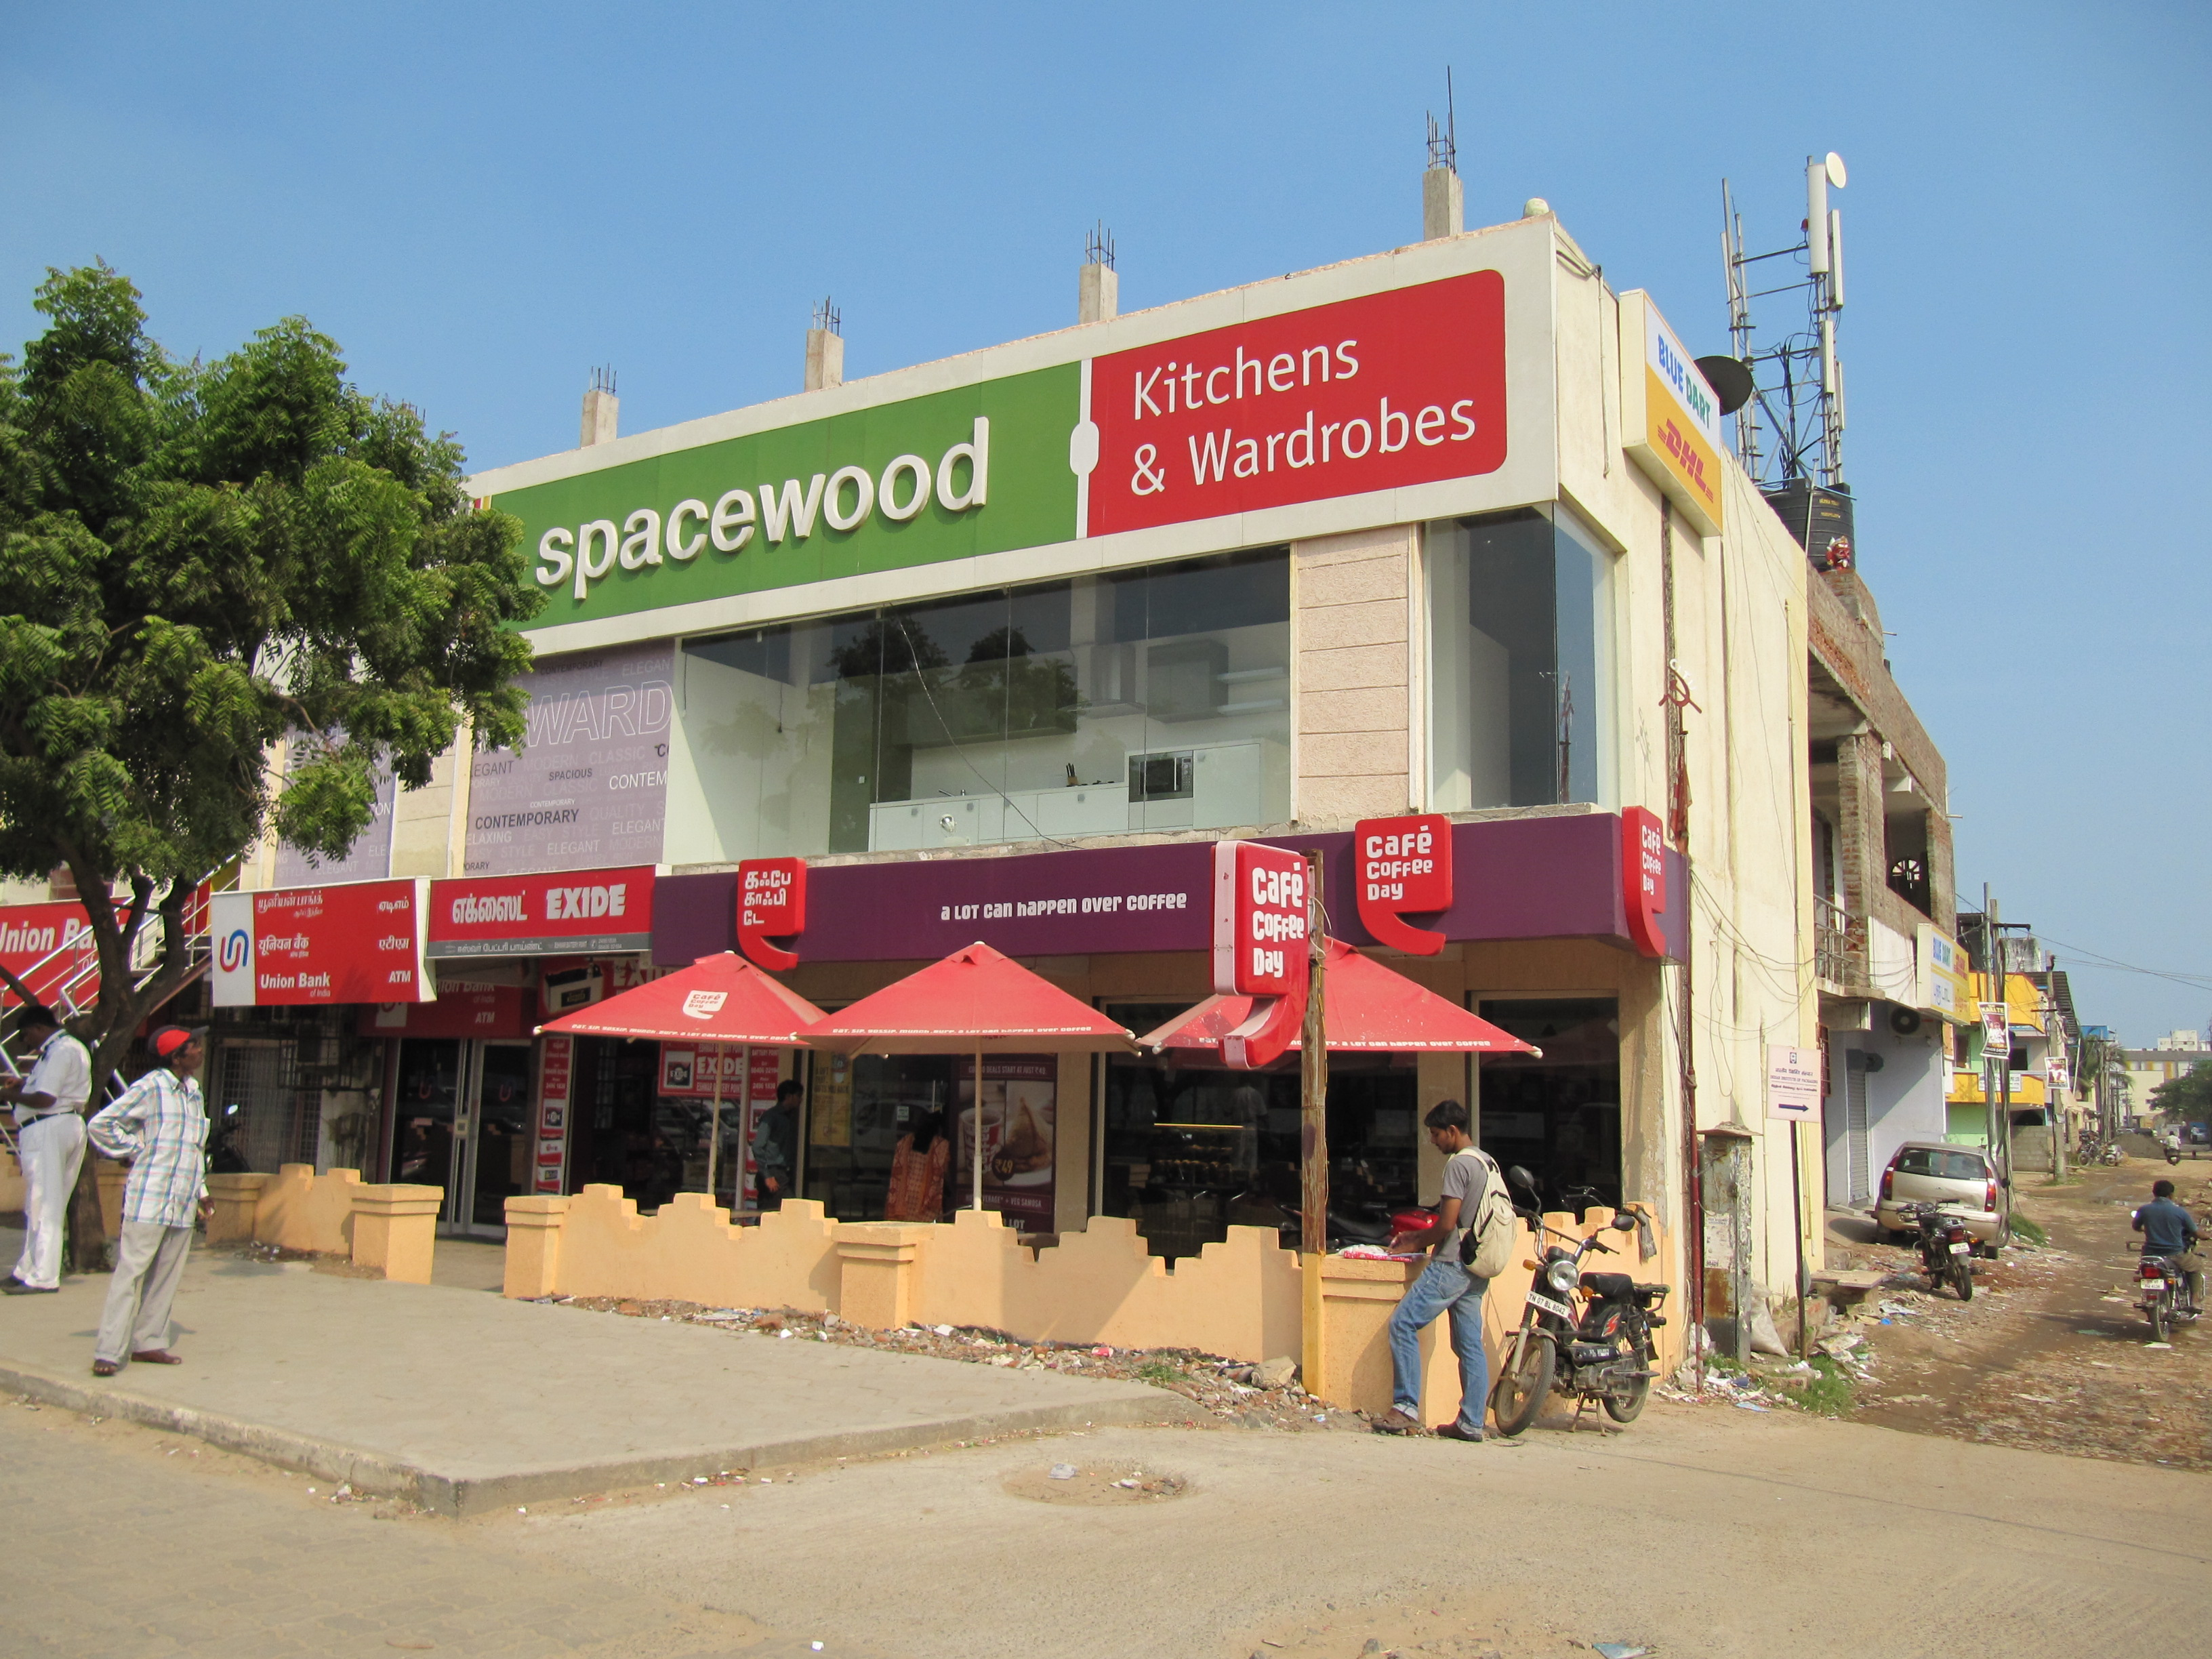 Spacewood Furniture   Kalyan Nagar   Bangalore Image. SPACEWOOD FURNITURE NAGPUR   SPACEWOOD FURNITURE   KALYAN NAGAR